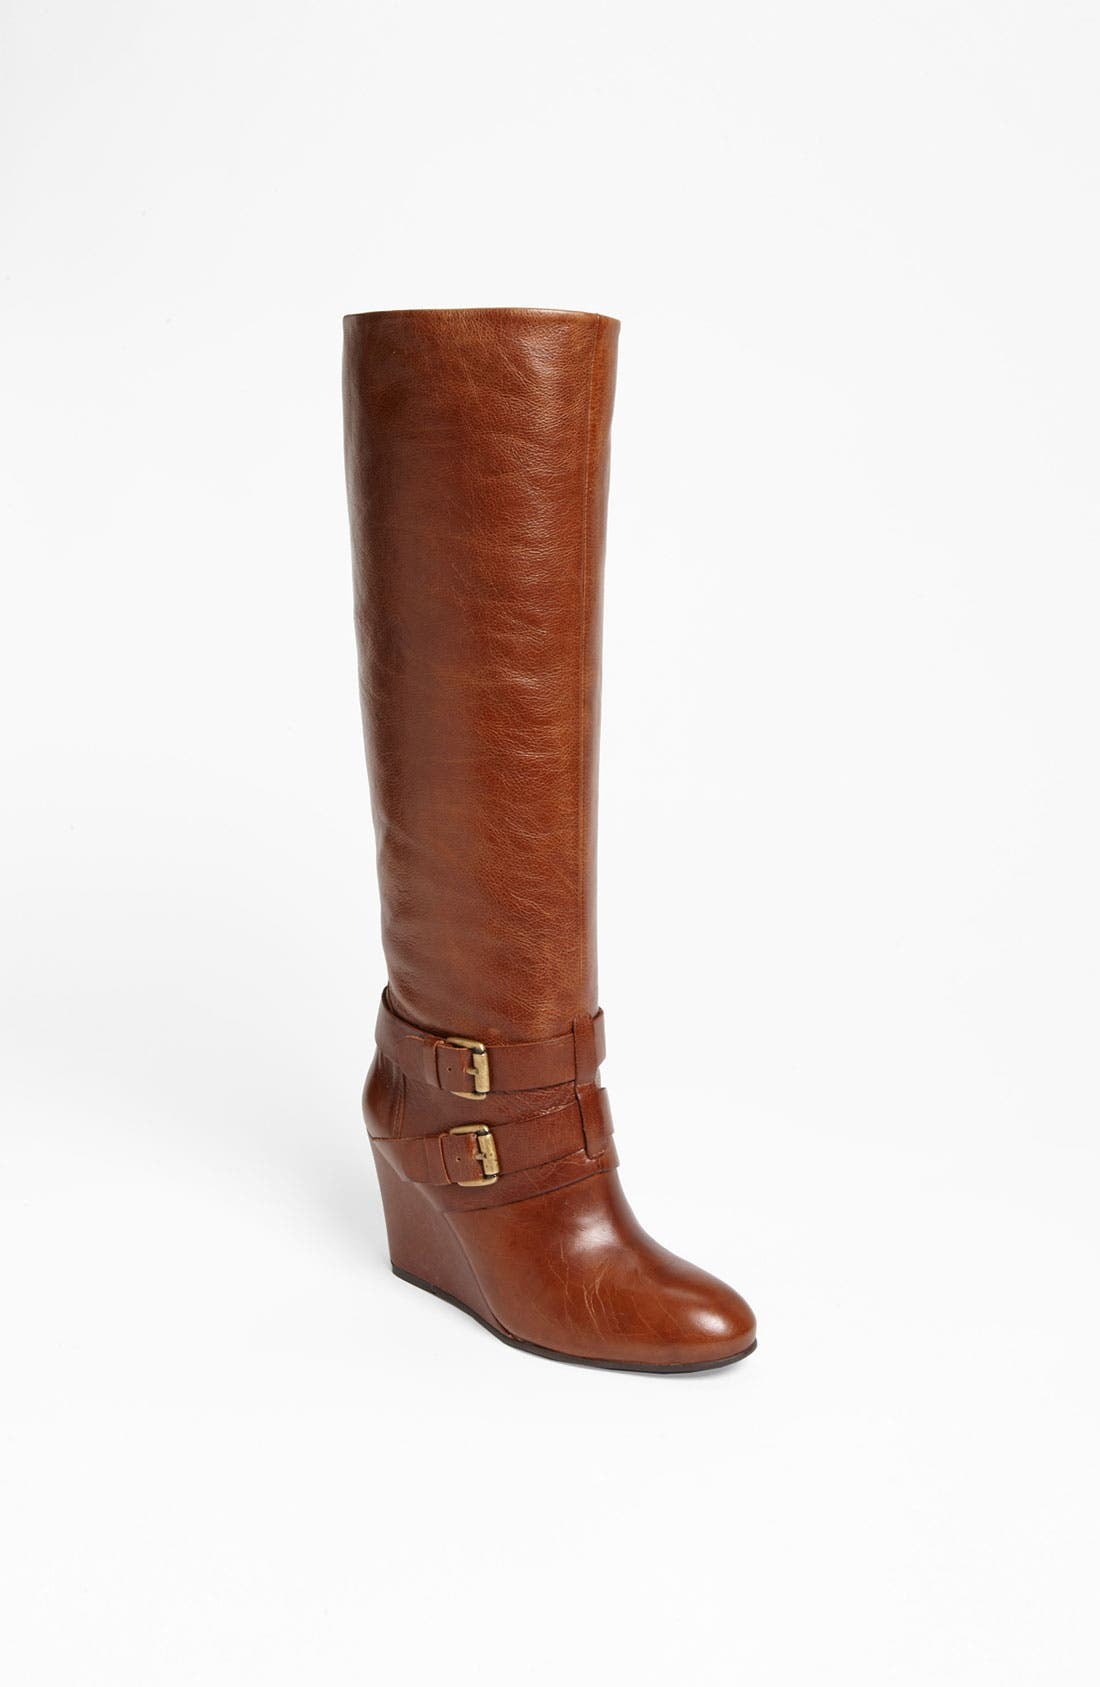 Alternate Image 1 Selected - Steven by Steve Madden 'Morgen' Boot